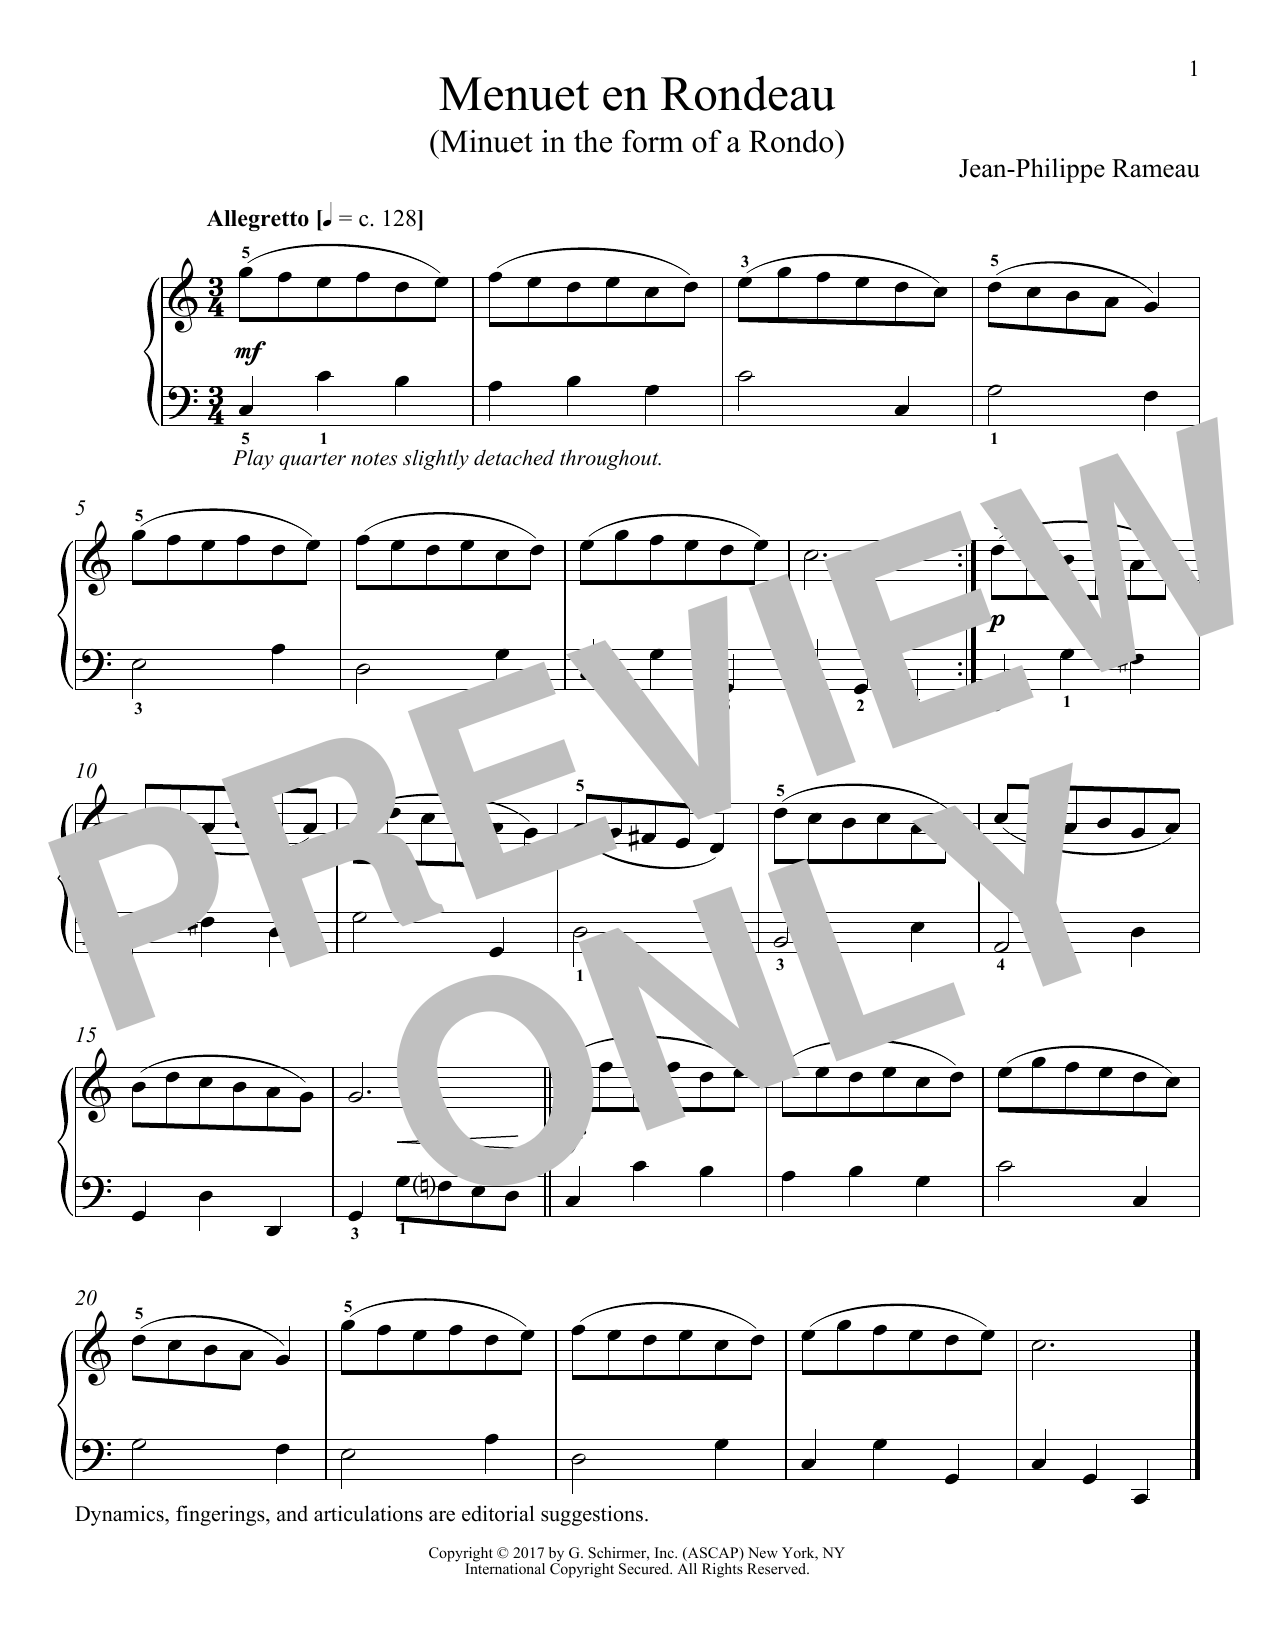 Jean-Phillippe Rameau Menuet En Rondeau sheet music notes and chords. Download Printable PDF.